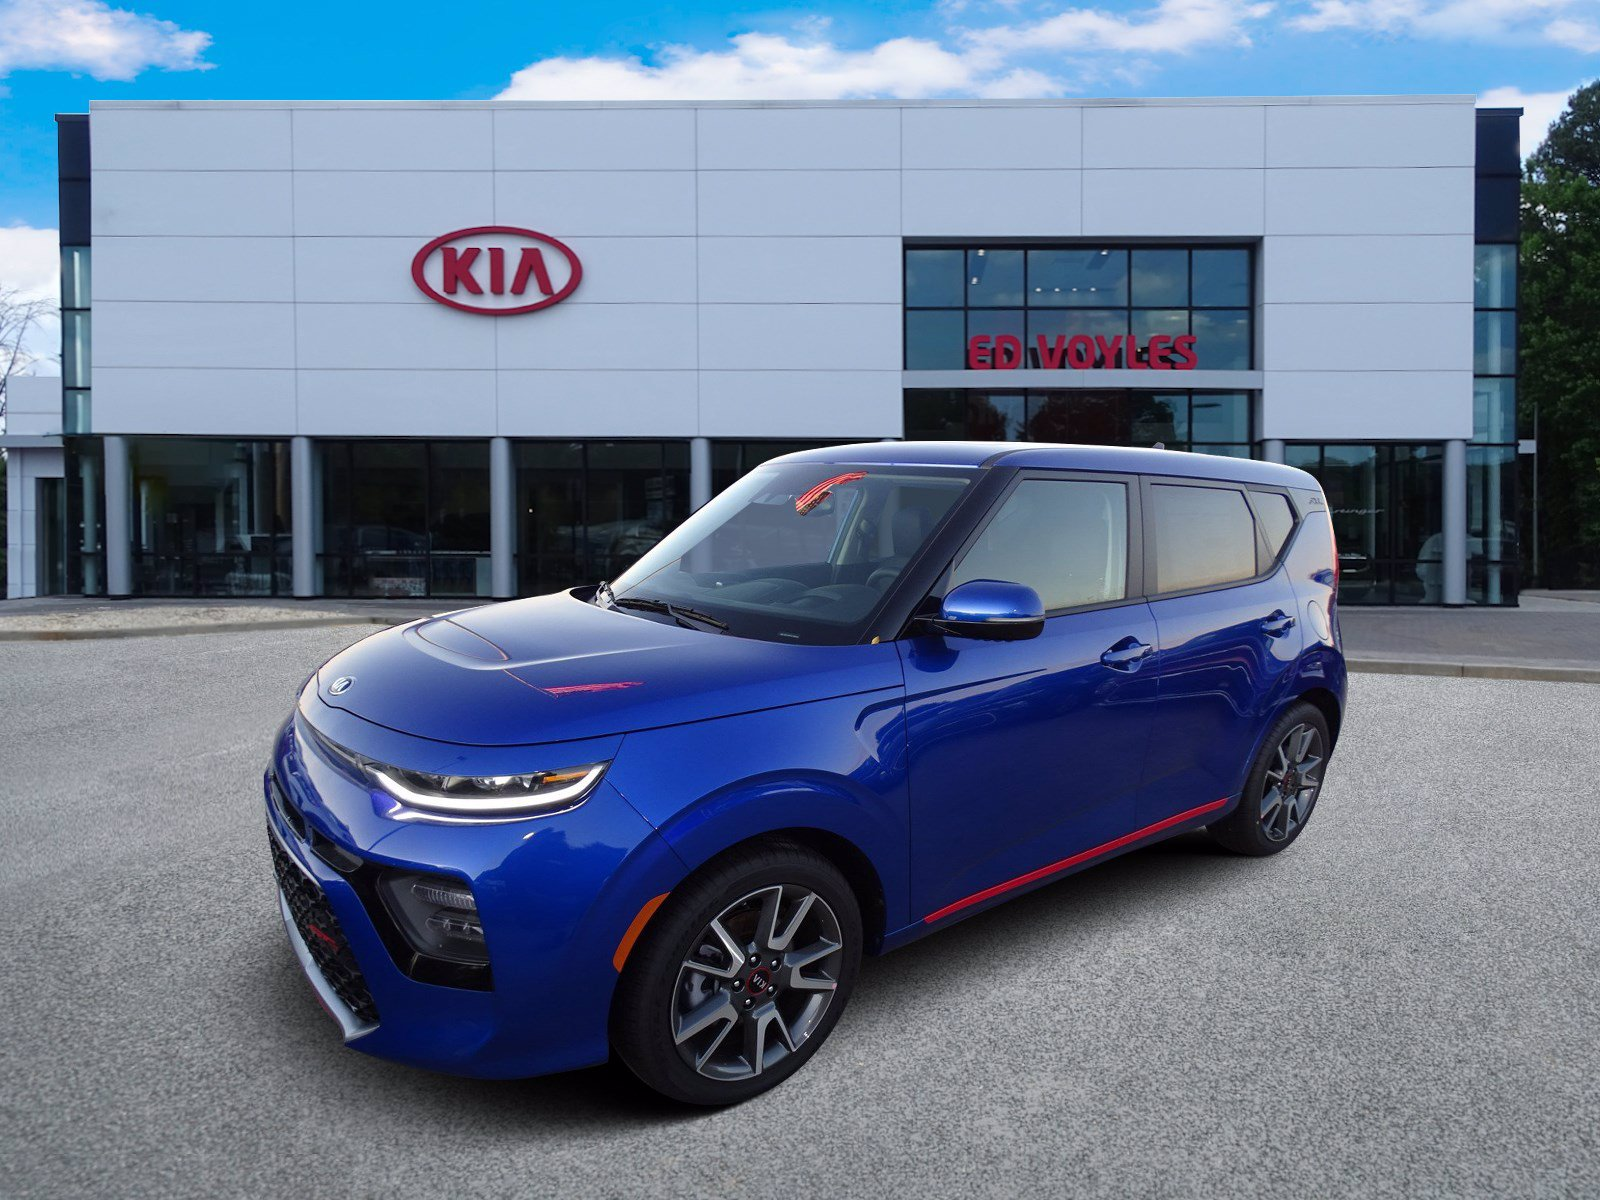 New 2020 Kia Soul Gt Line Turbo Hatchback For Sale 607902 Ed